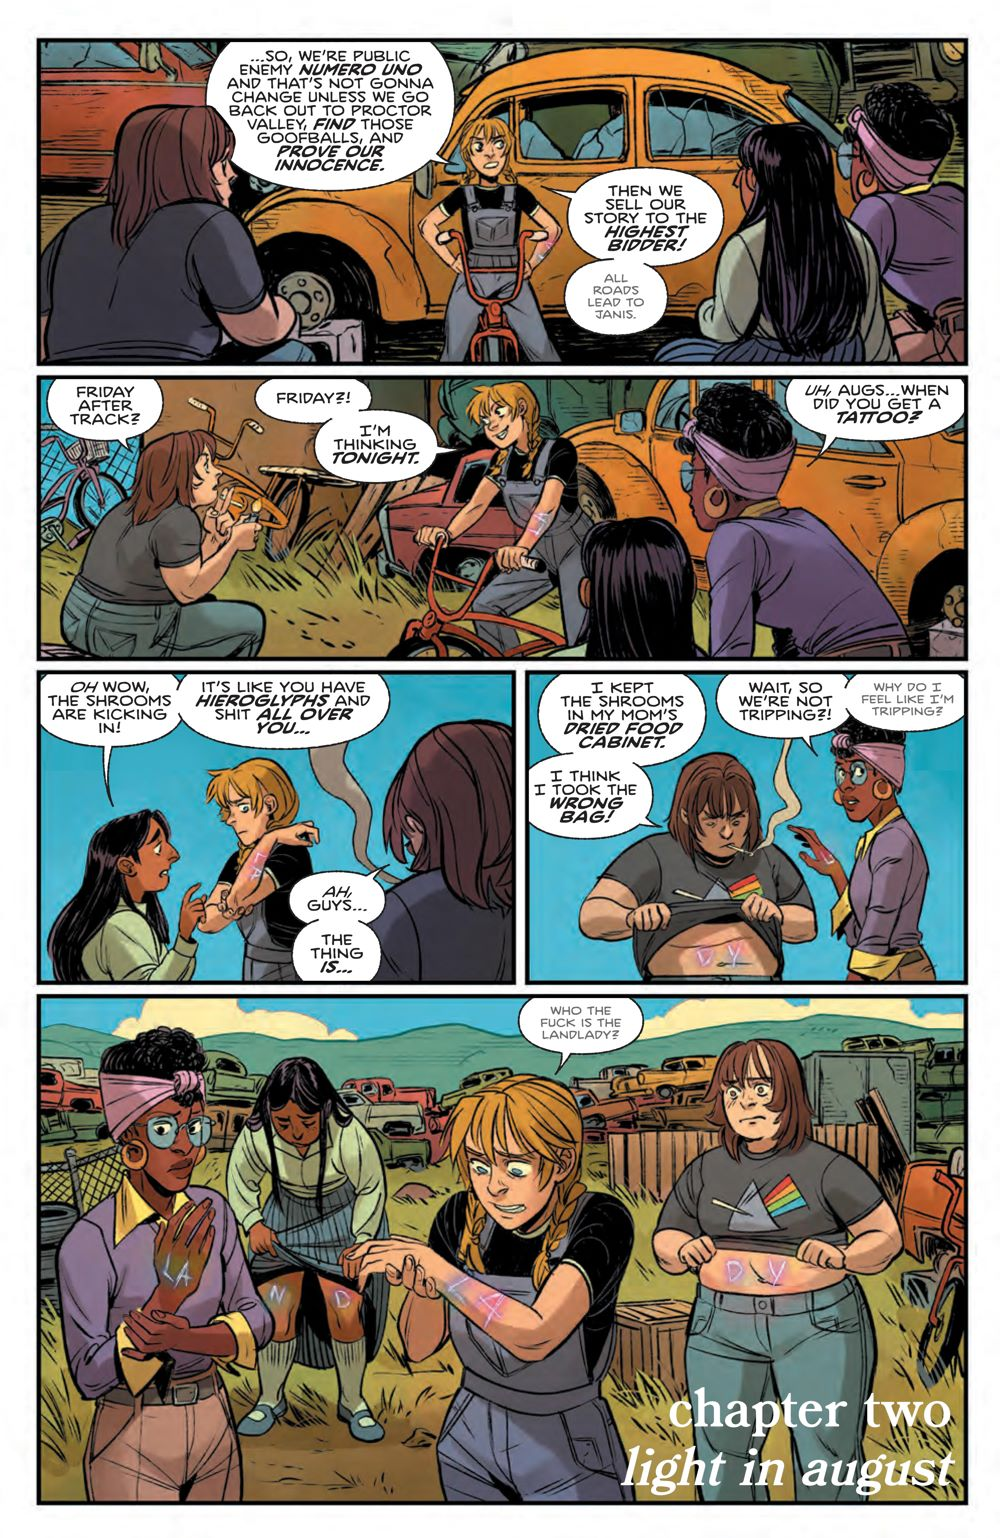 ProctorValleyRoad_002_PRESS_6 ComicList Previews: PROCTOR VALLEY ROAD #2 (OF 5)